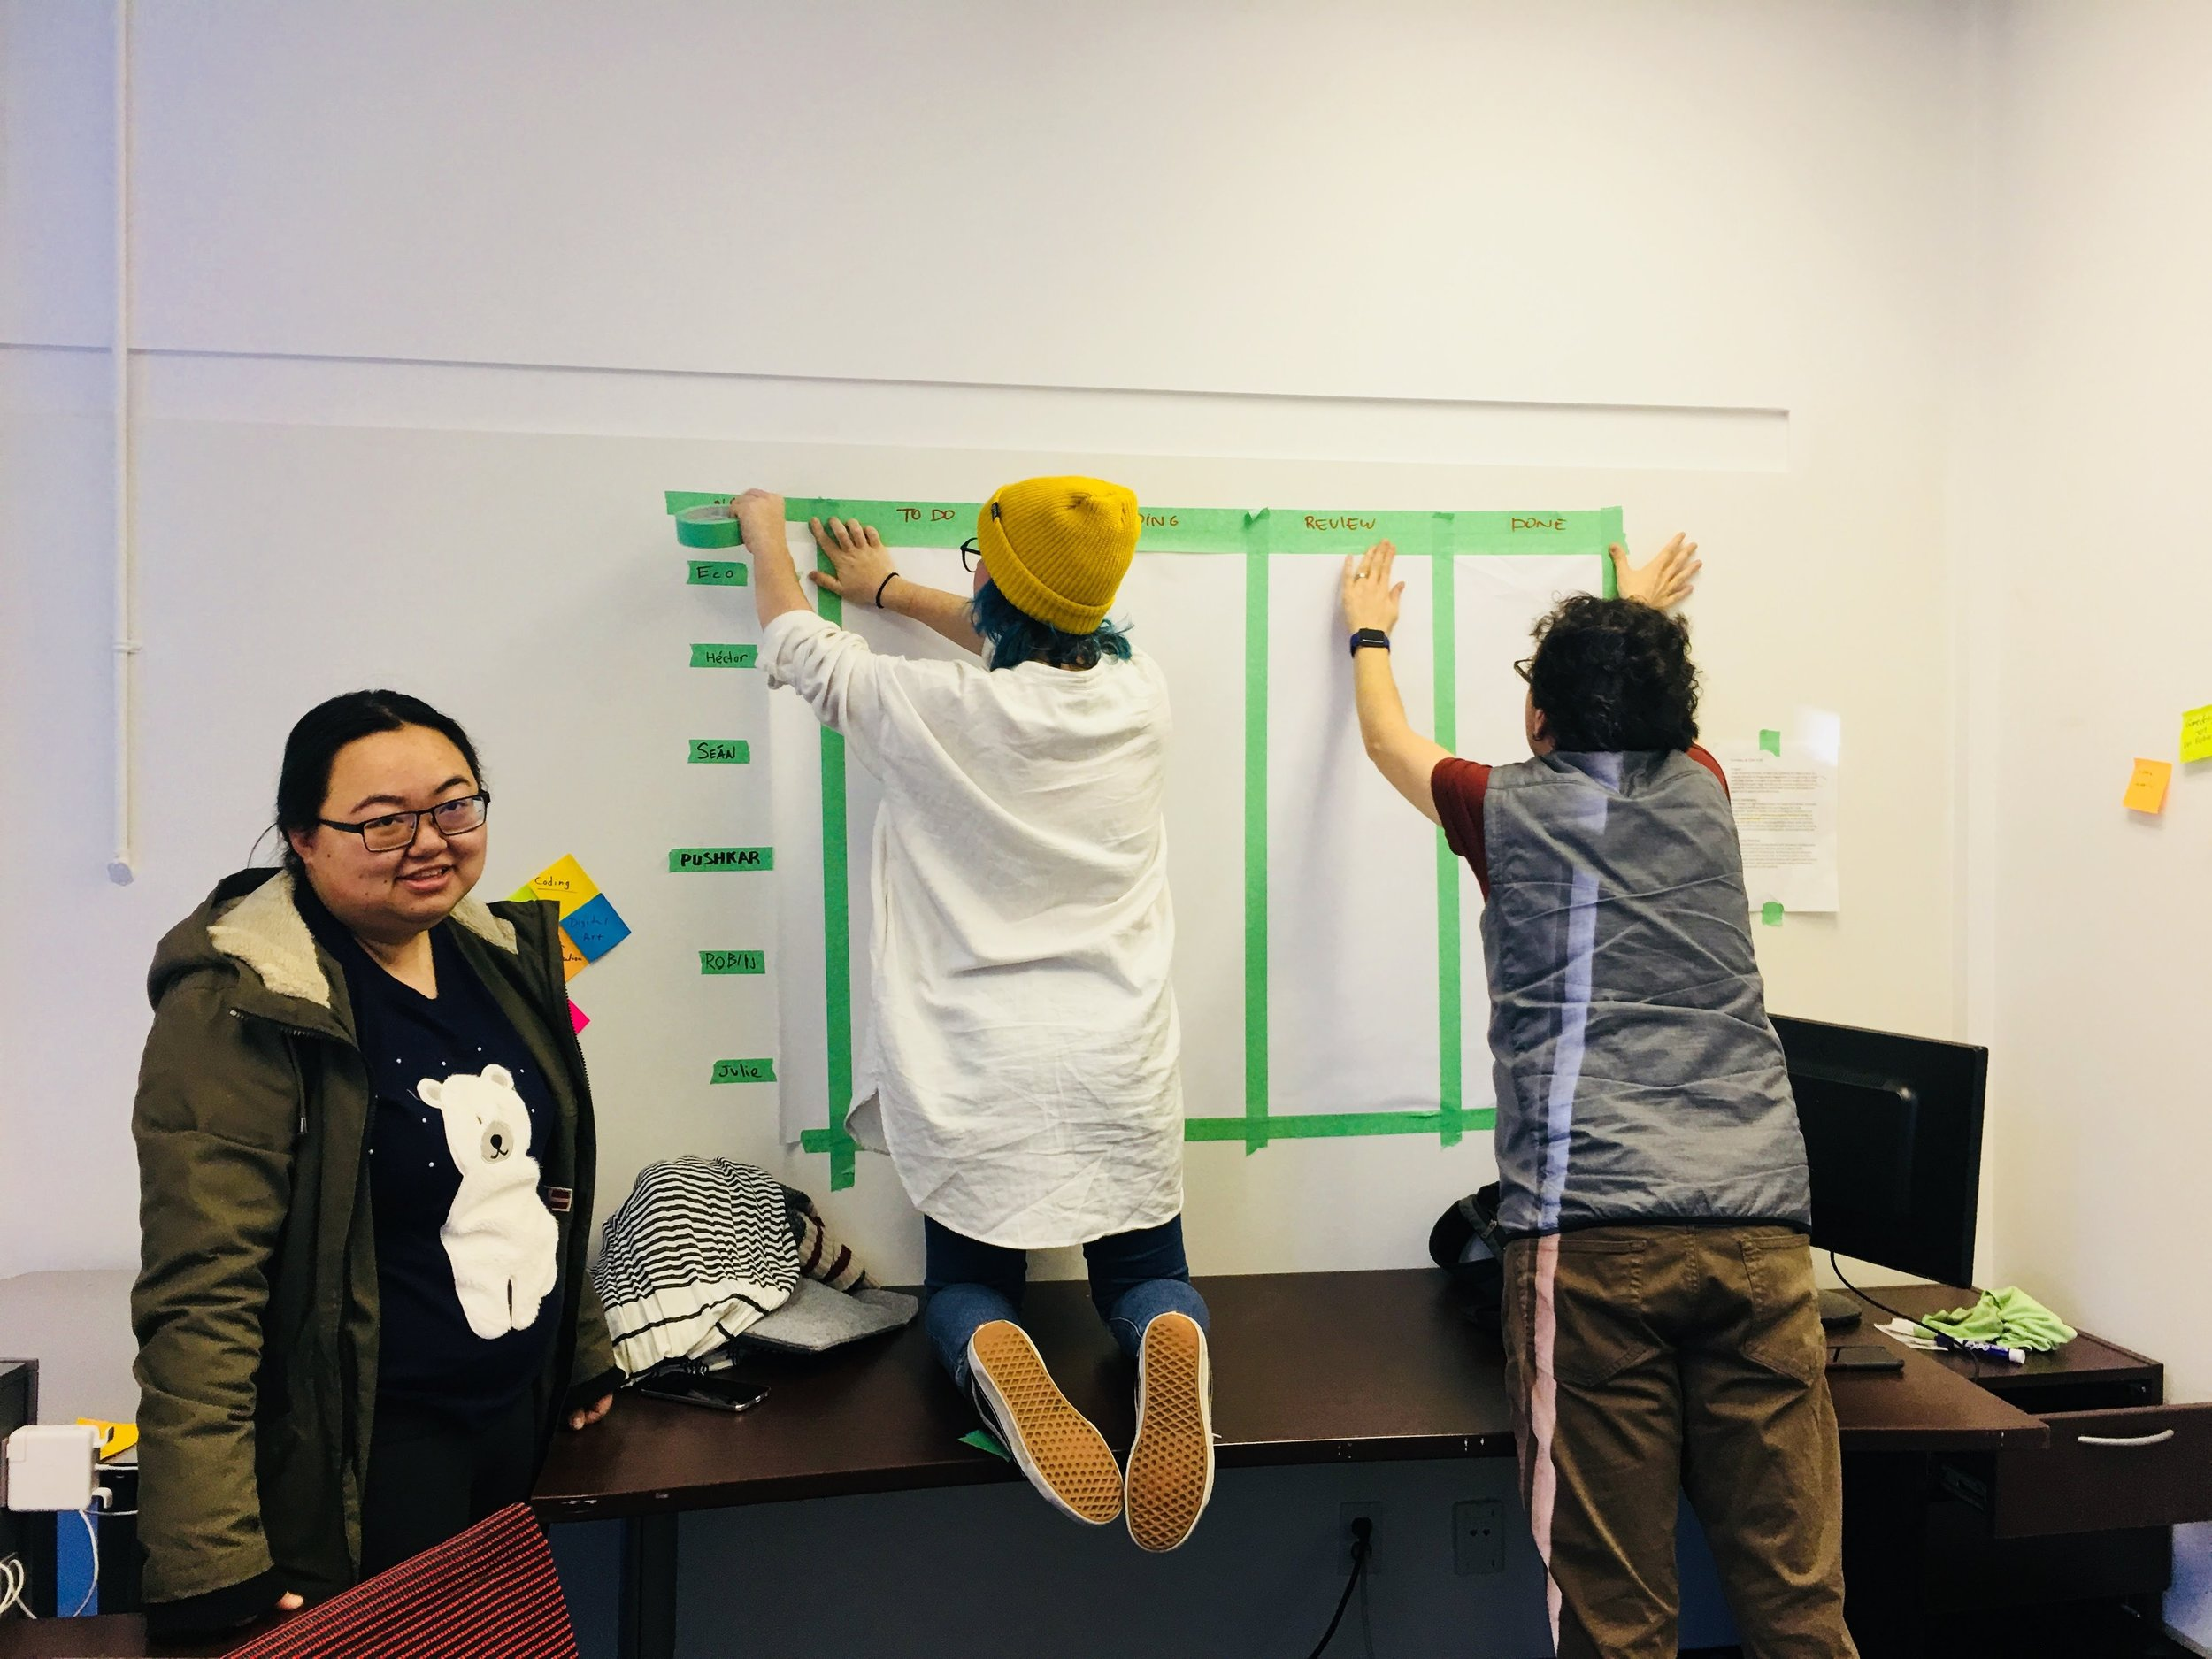 Building it together - Building the board as a team was an important part of the process.